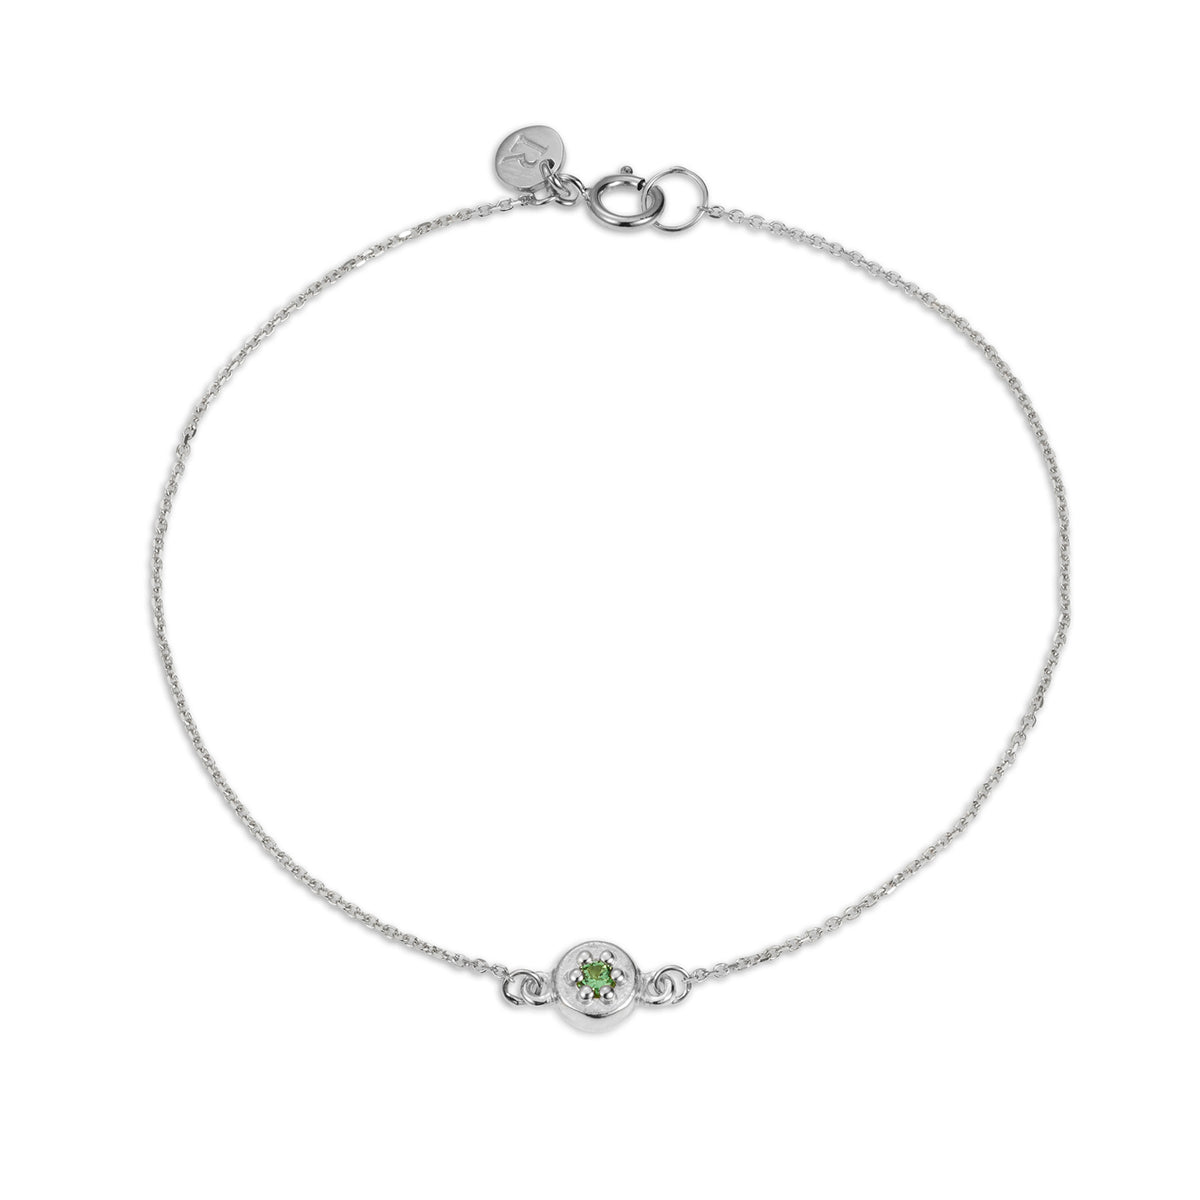 Luke Rose Jewellery silver poppy rock green tsavorite garnet bracelet